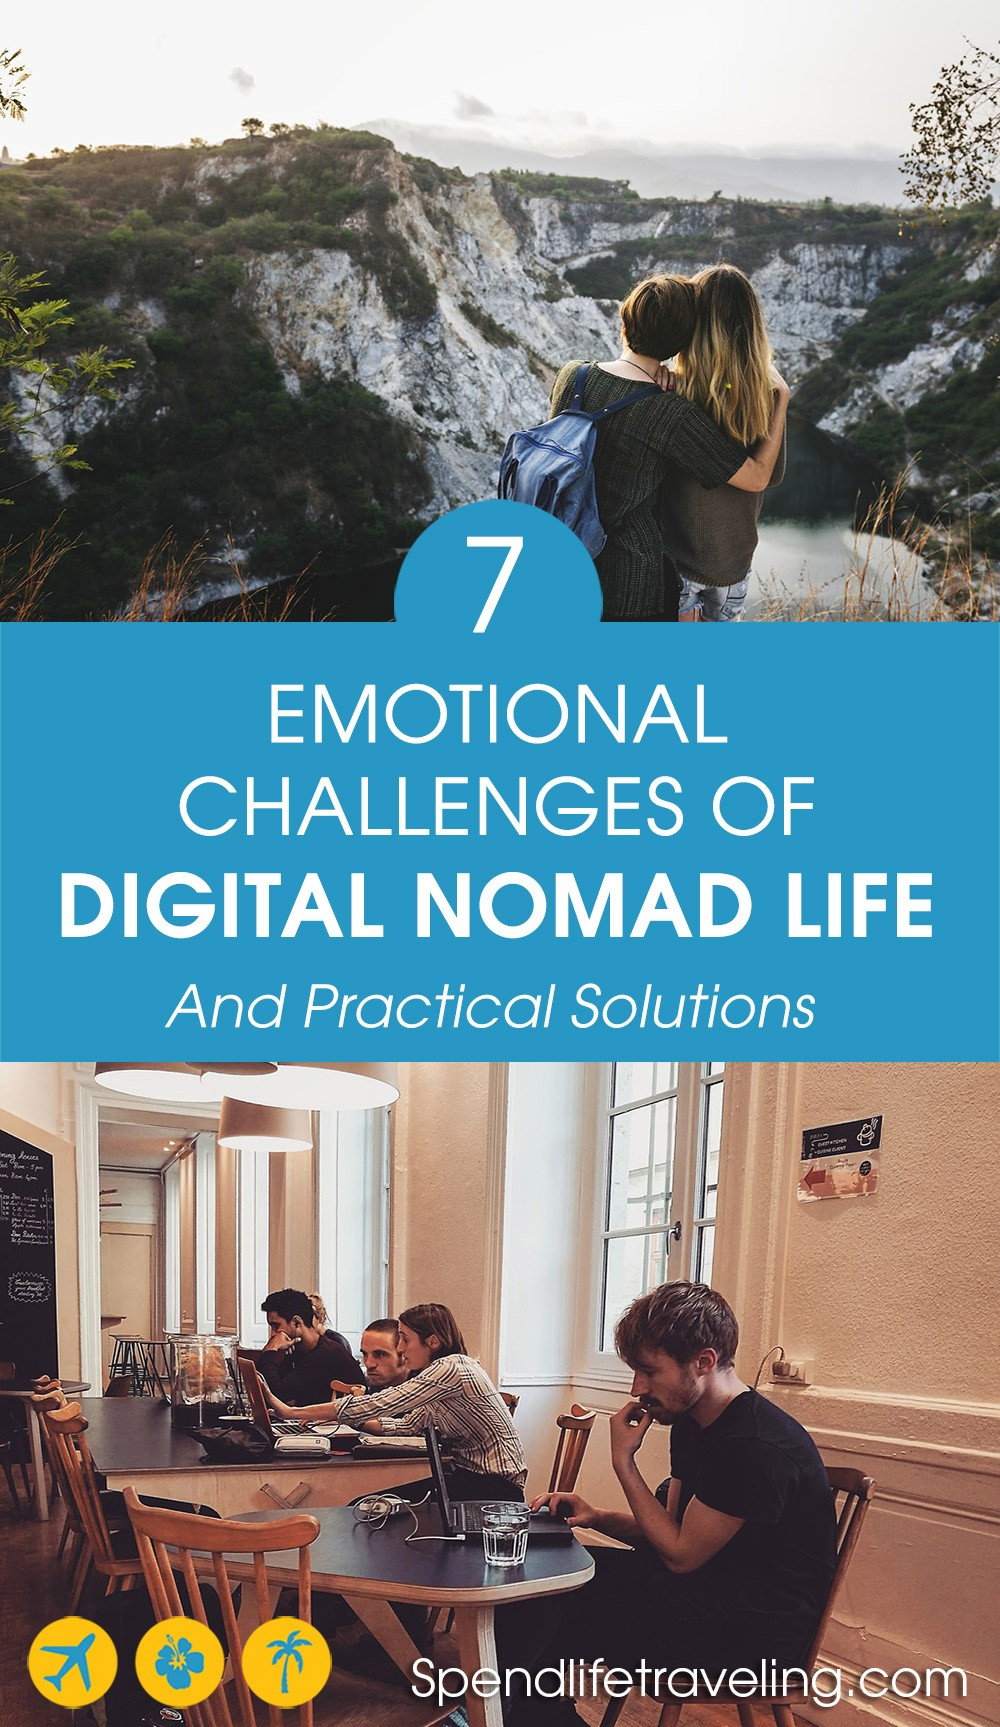 The digital nomad lifestyle is great, but does come with some challenges and difficulties. Read about these 7 emotional challenges and how to deal with them. #digitalnomad #digitalnomadlife #locationindependent